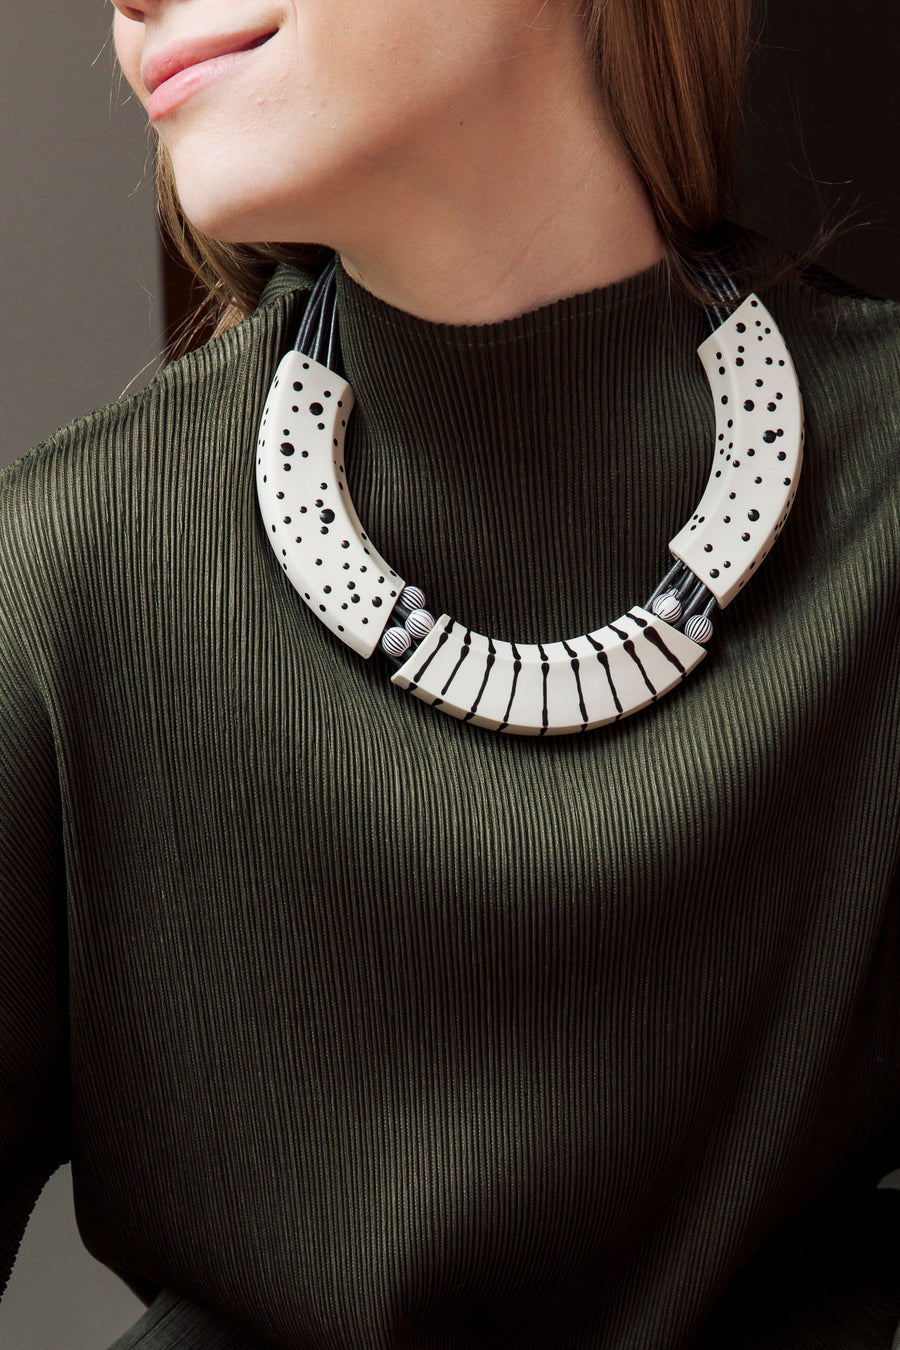 MAKENA NECKLACE - Red, Black & white